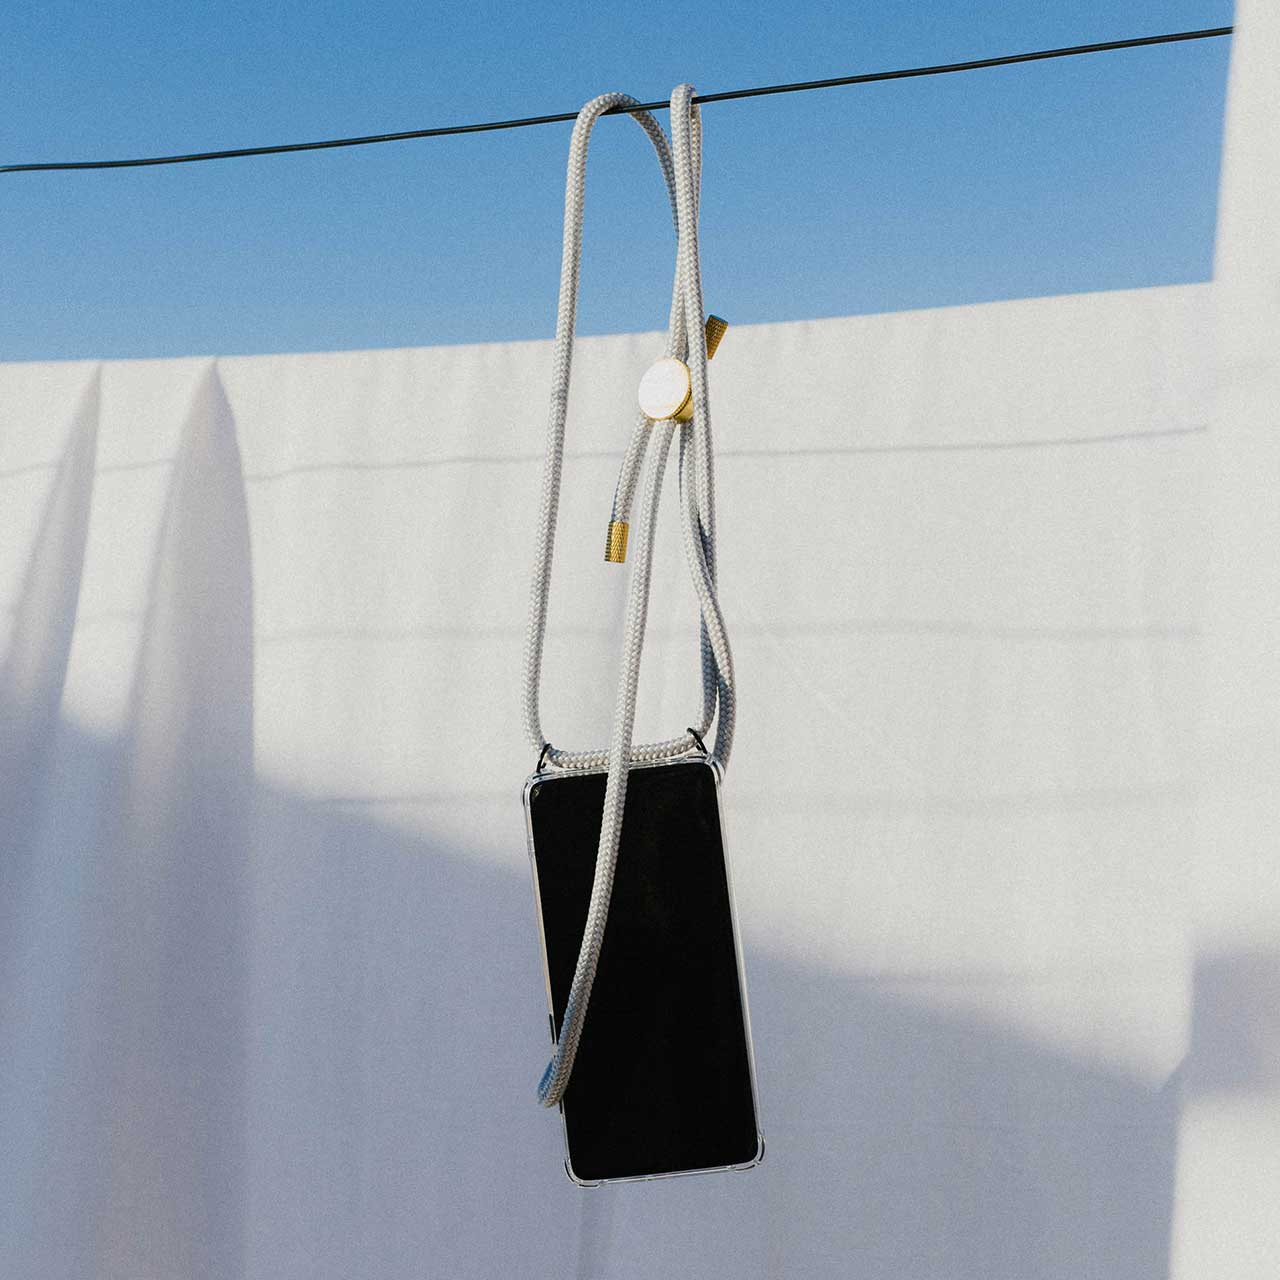 KNOK CASE phone necklace in silver grey hanging from a washing line in the sunshine